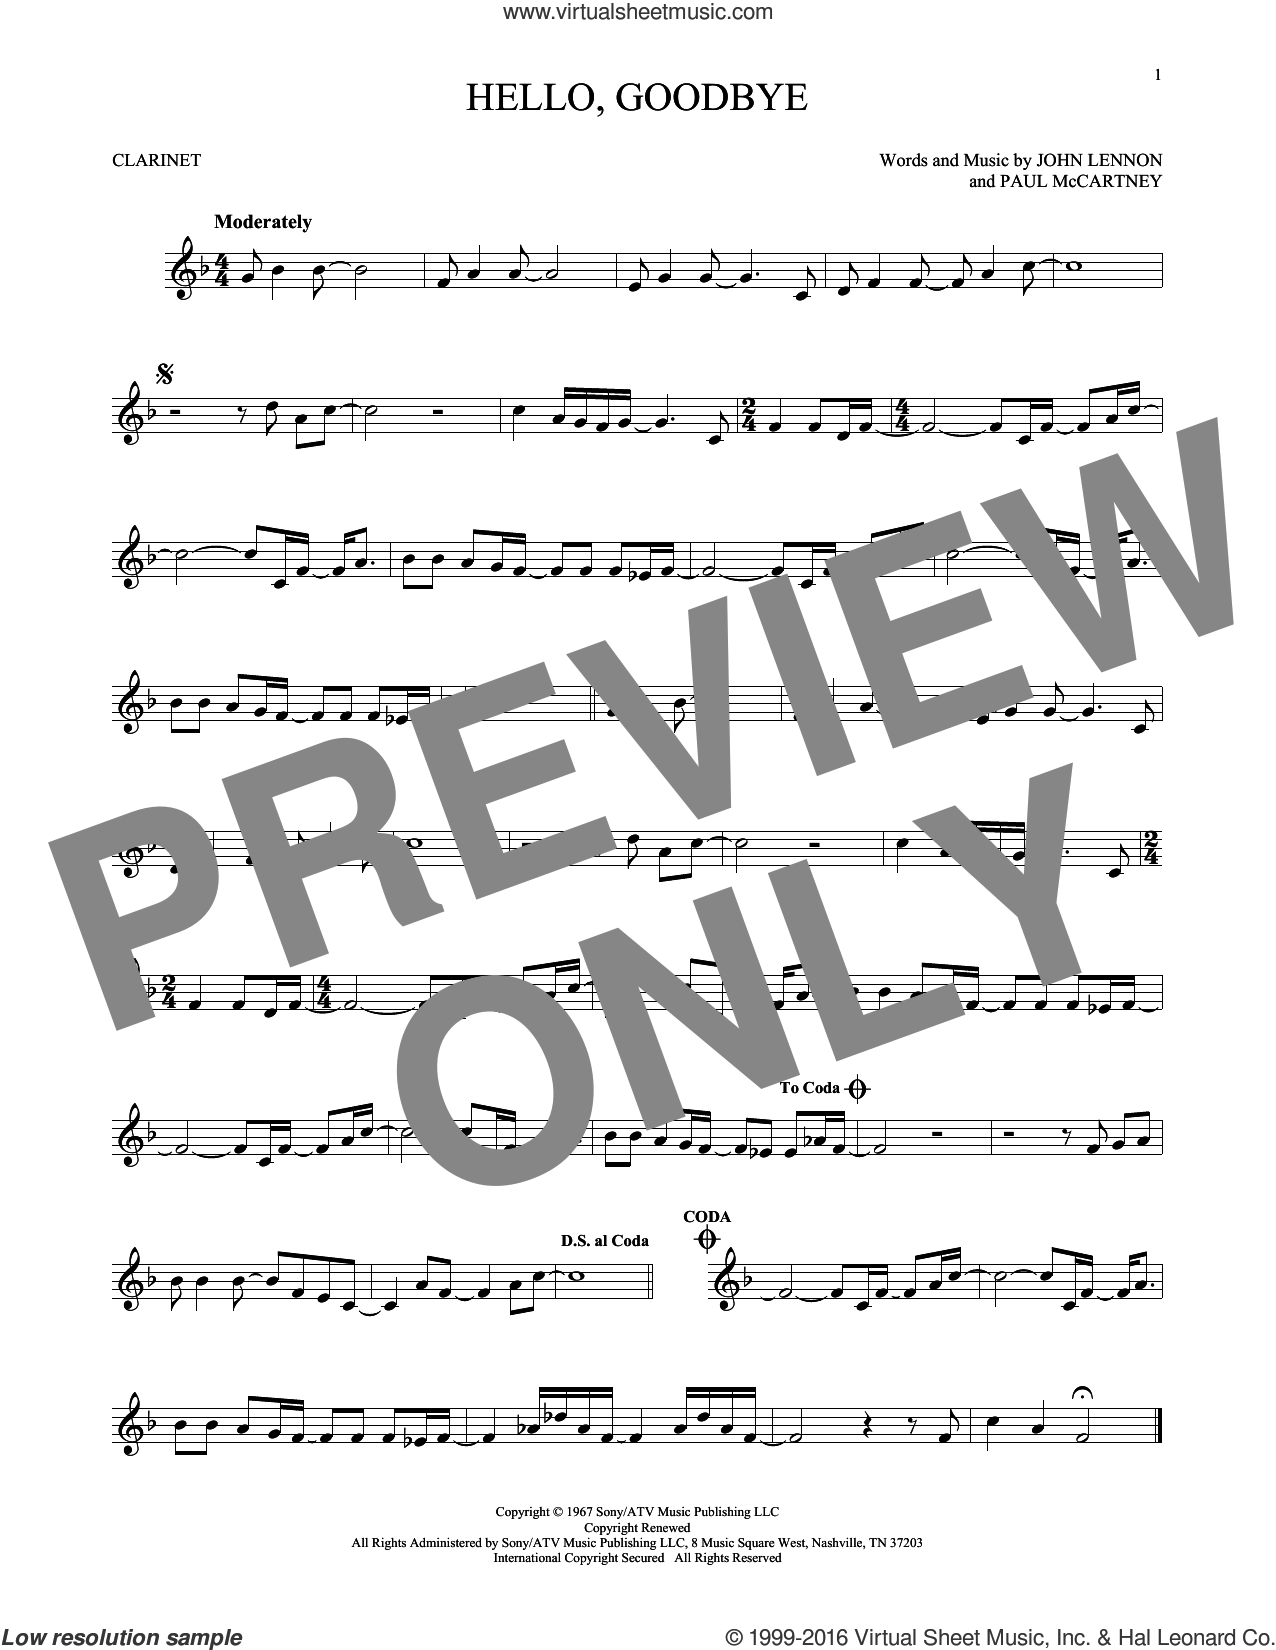 Hello, Goodbye sheet music for clarinet solo by The Beatles, John Lennon and Paul McCartney, intermediate skill level